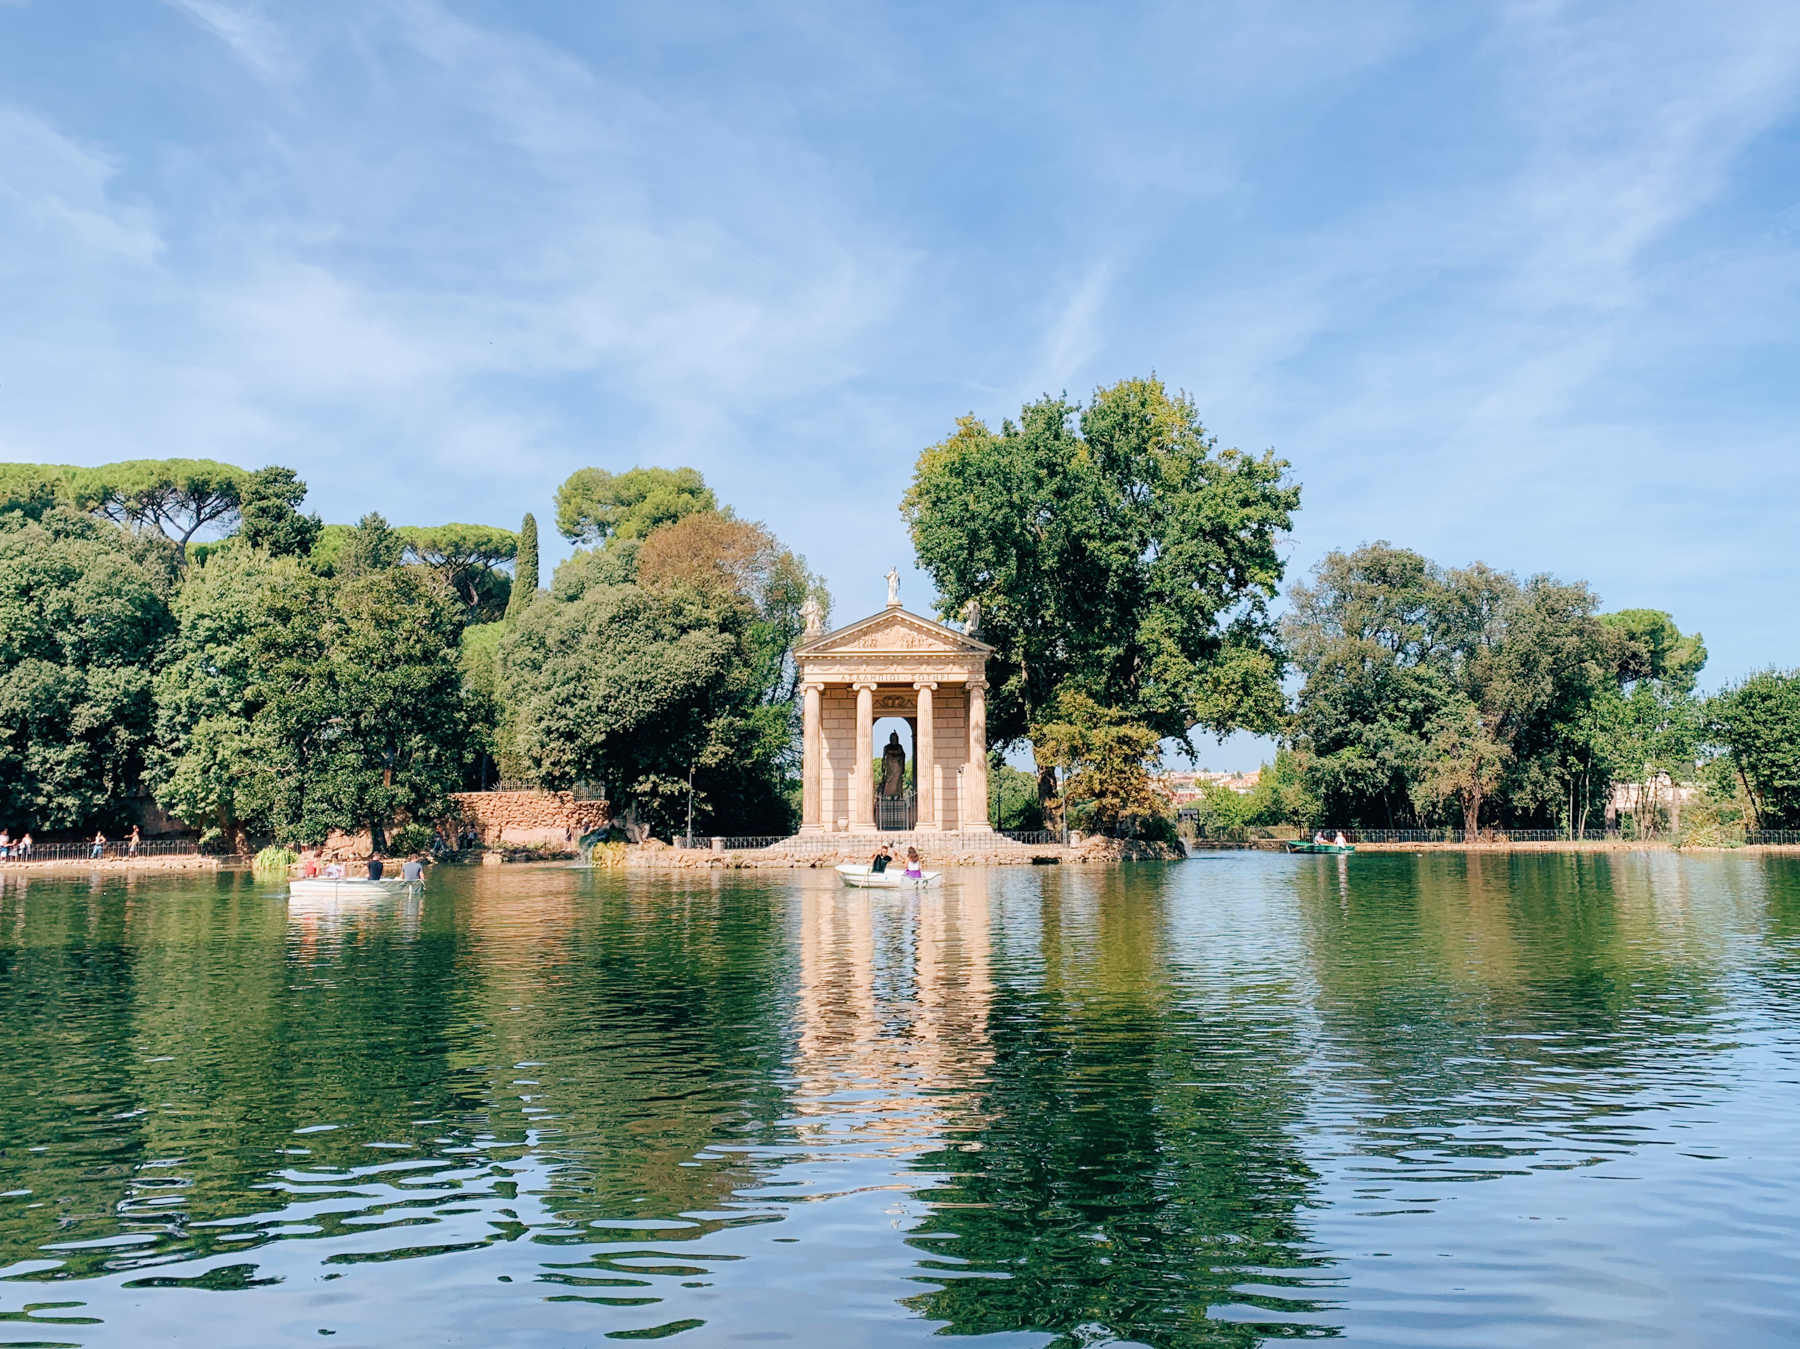 One our second day in Rome we visited the Villa Borghese. Here is the Temple of Asclepius inside the villa where you can row boats!